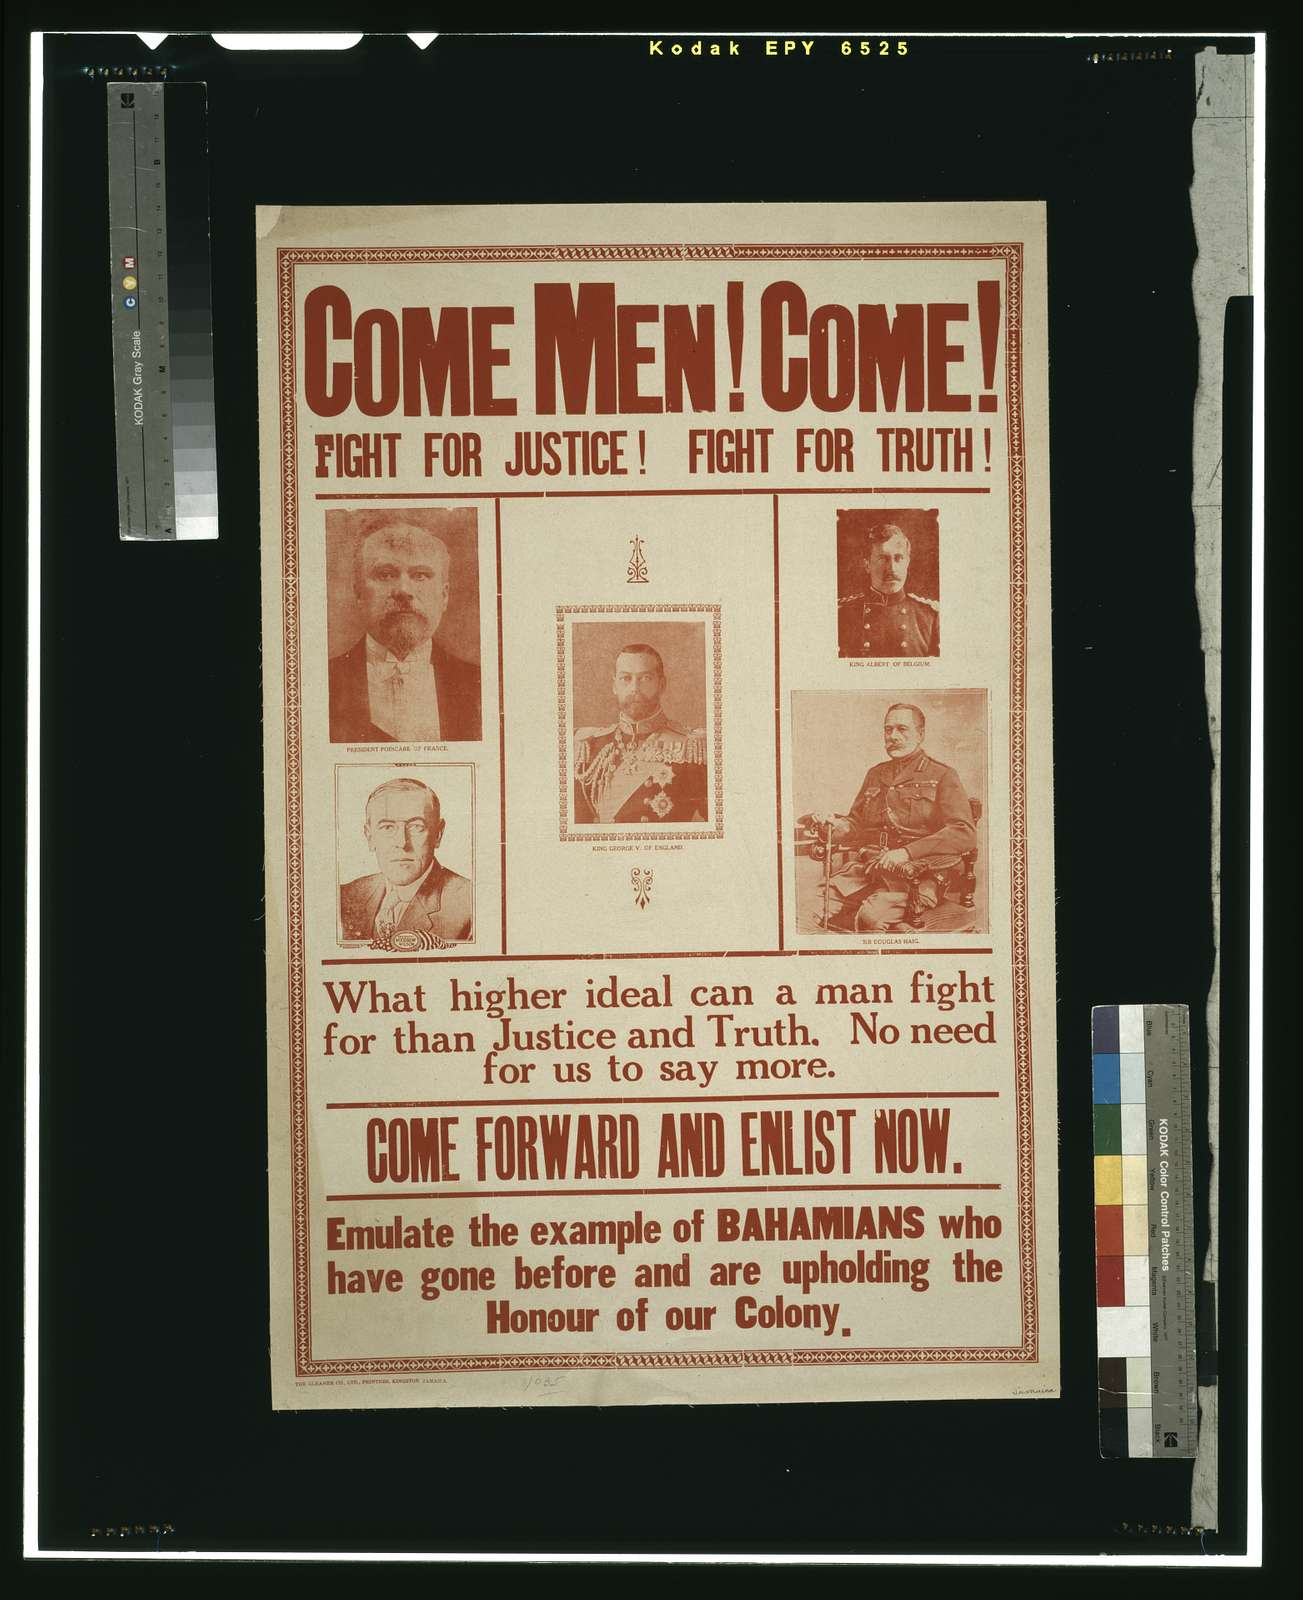 Come men! Come! Fight for justice! ... Emulate the example of Bahamians who have gone before and are upholding the honour of our colony / The Gleaner Co., Ltd., Printers, Kingston, Jamaica.